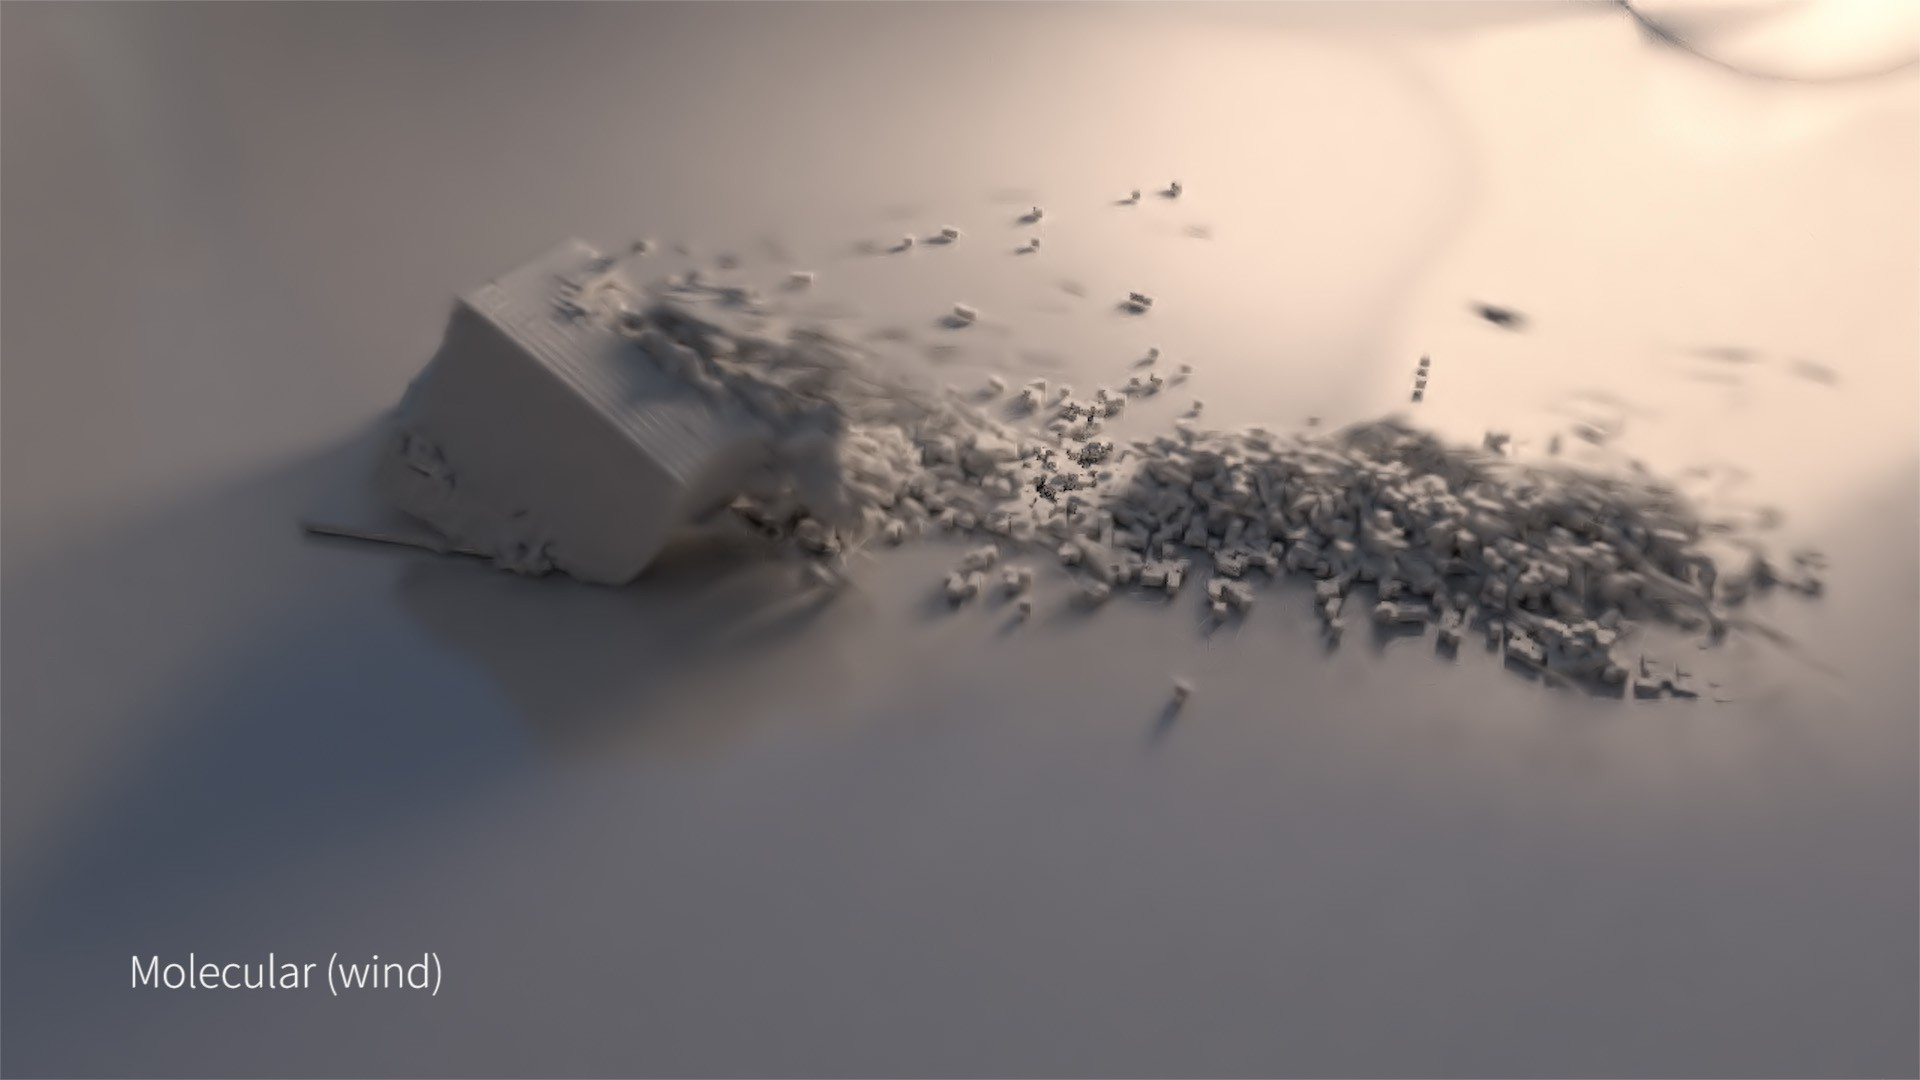 Blender Destruction Tutorial: 9 Ways to Destroy Things